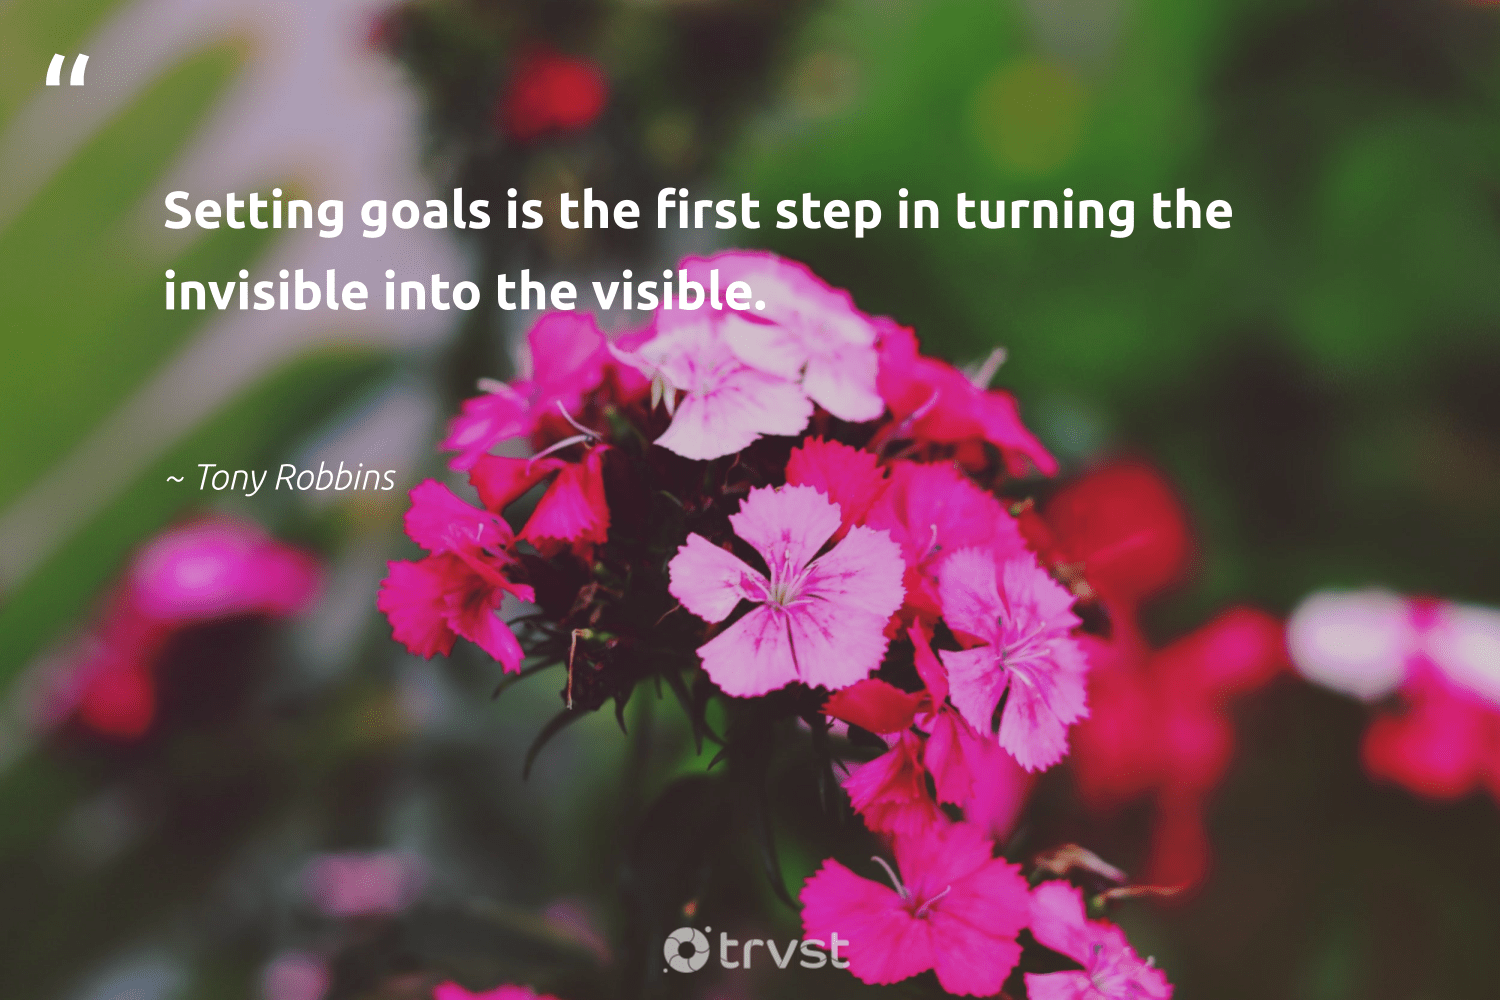 """""""Setting goals is the first step in turning the invisible into the visible.""""  - Tony Robbins #trvst #quotes #goals #creativemindset #begreat #mindset #dogood #motivation #futureofwork #changemakers #dosomething #growthmindset"""